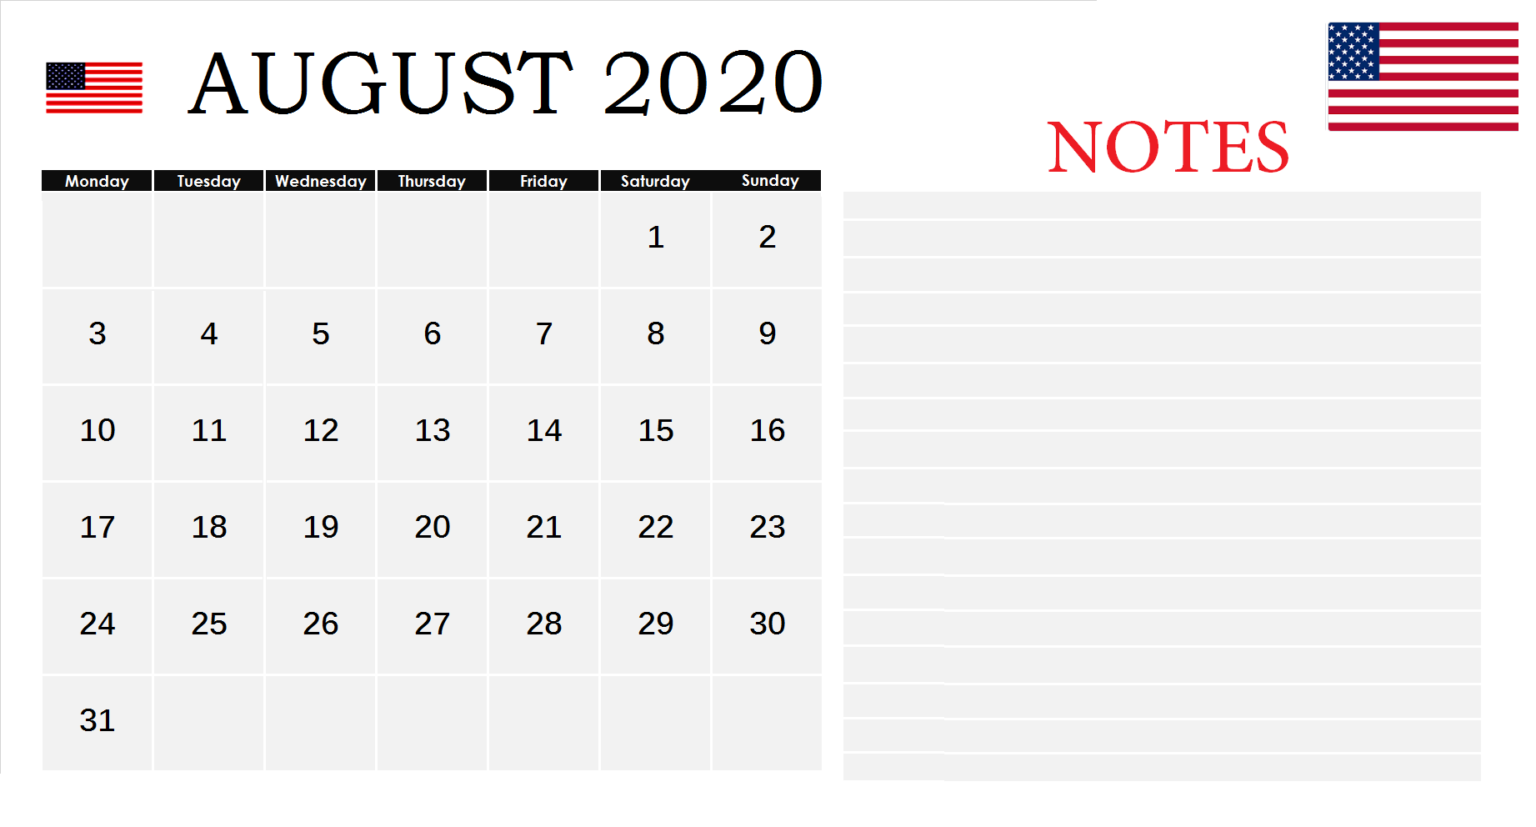 USA August 2020 Federal Holidays